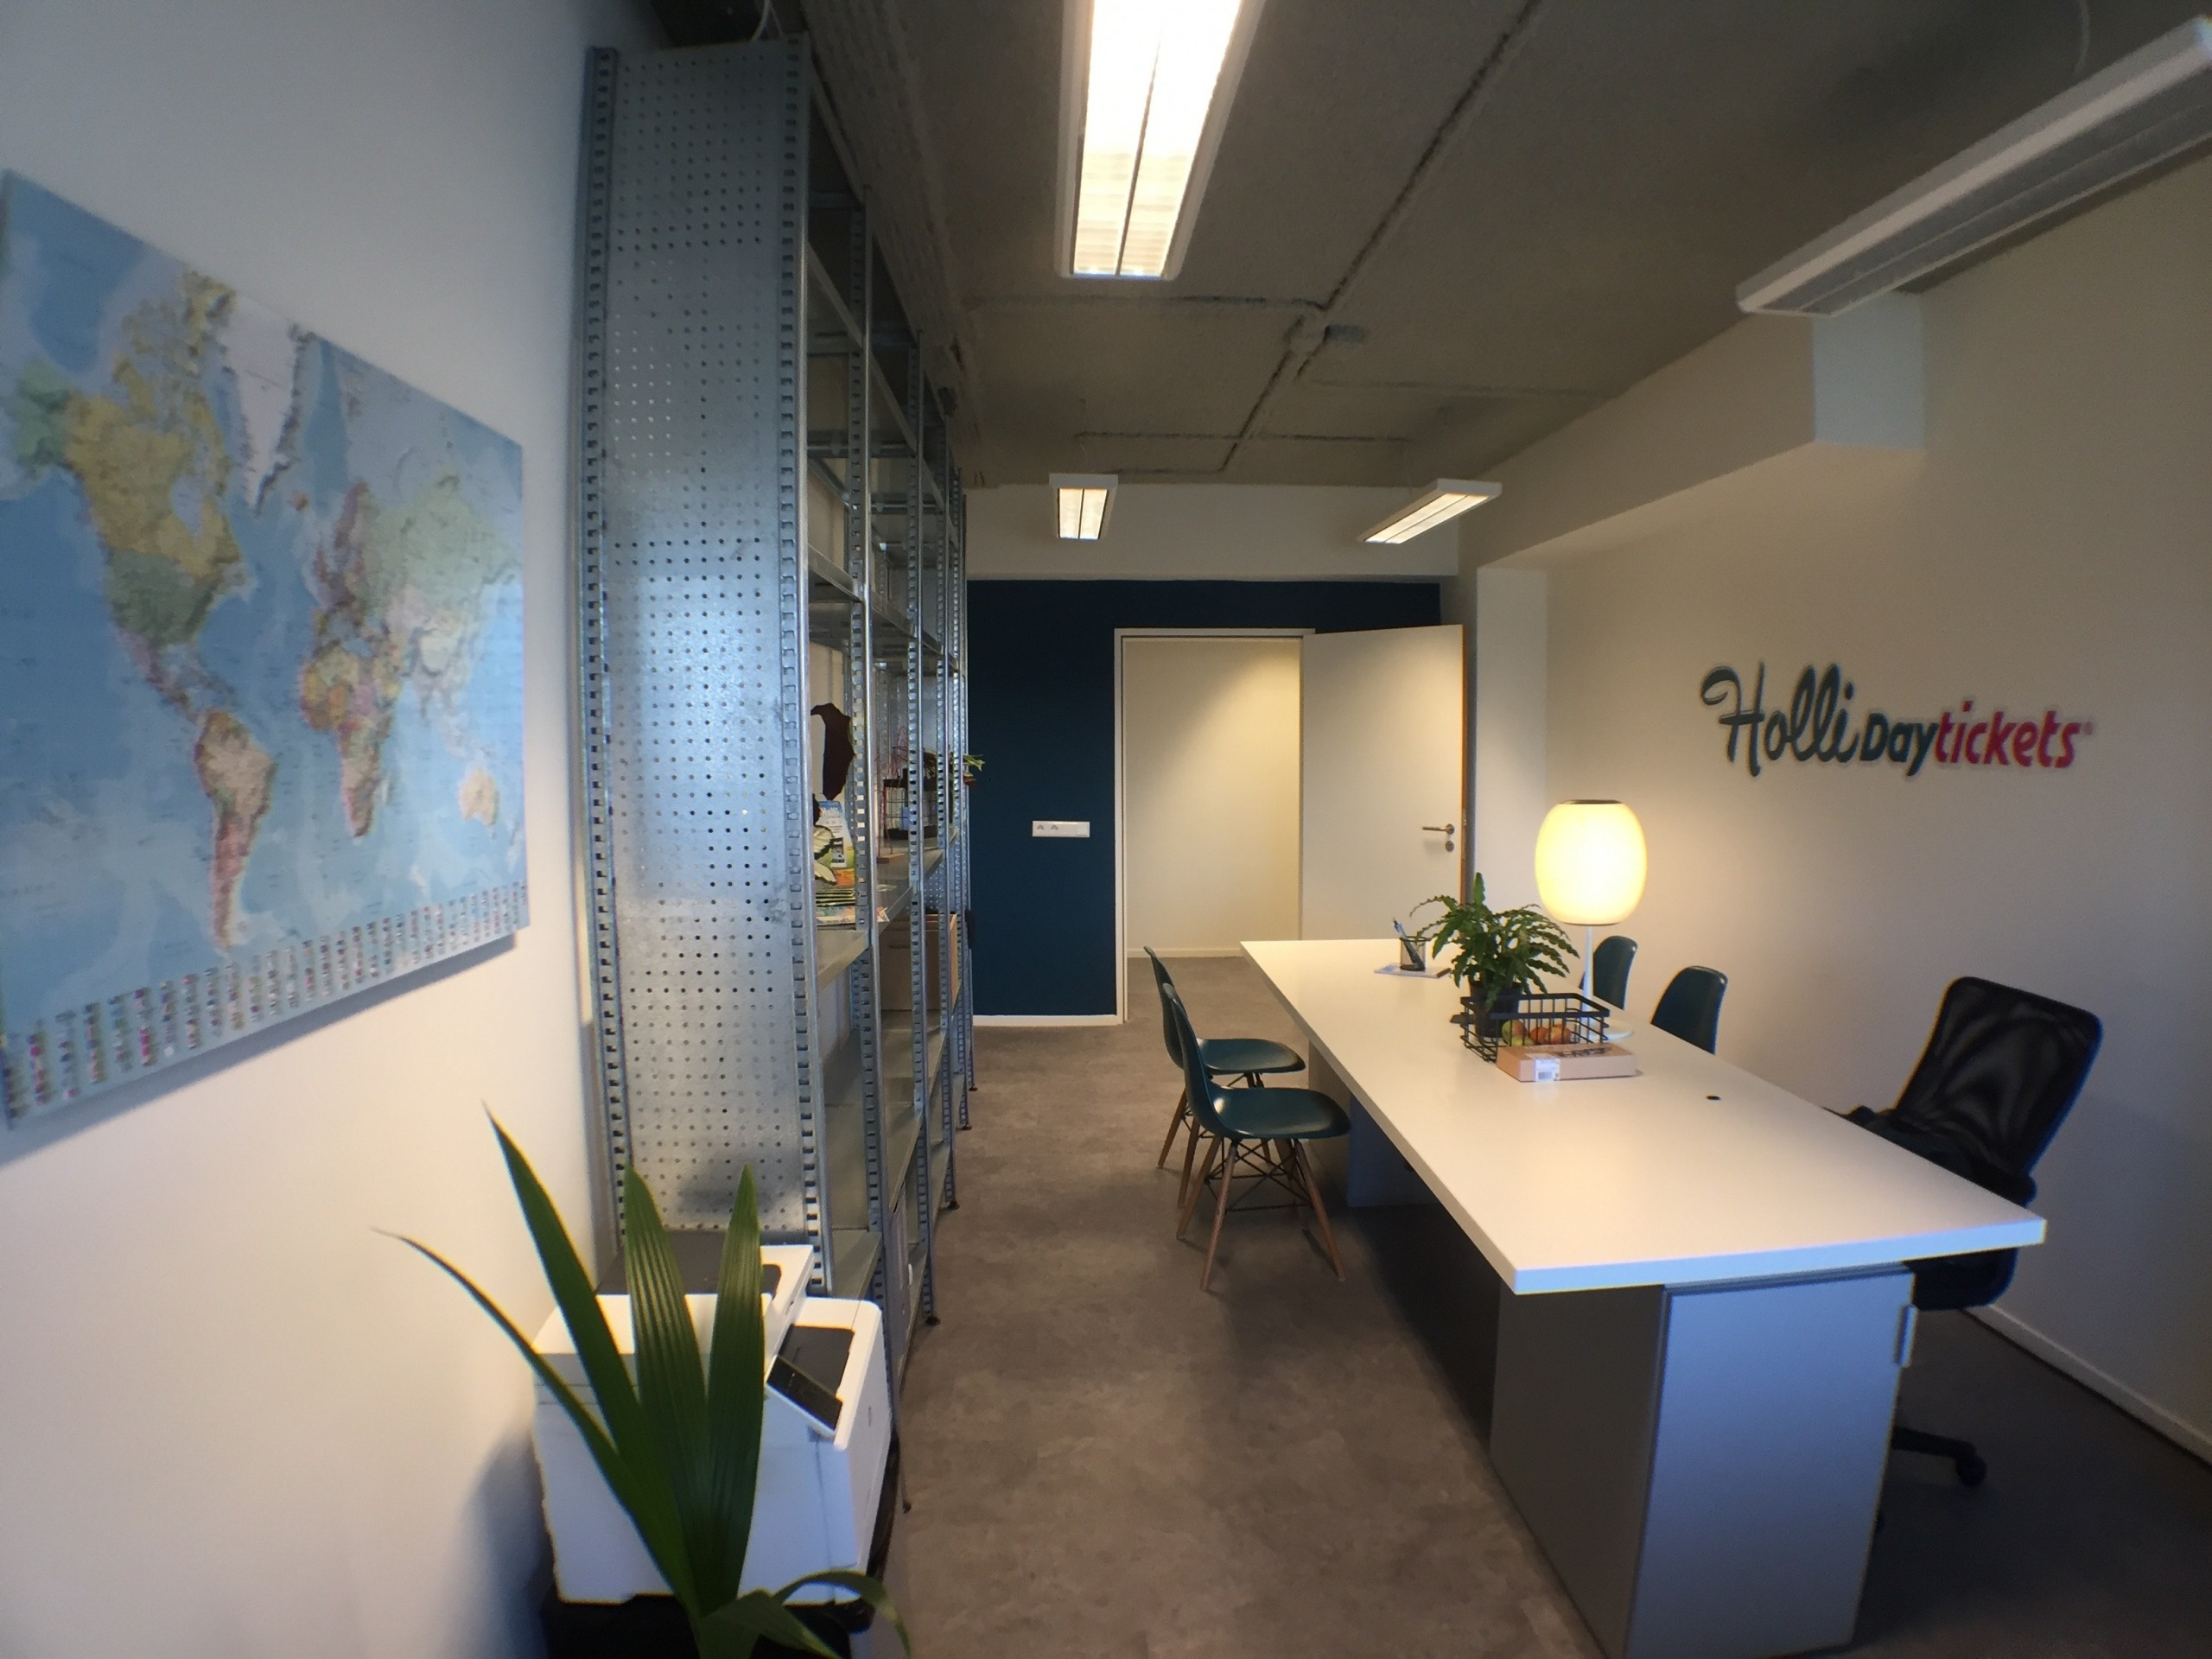 Holli-day.com headquarters in the Netherlands